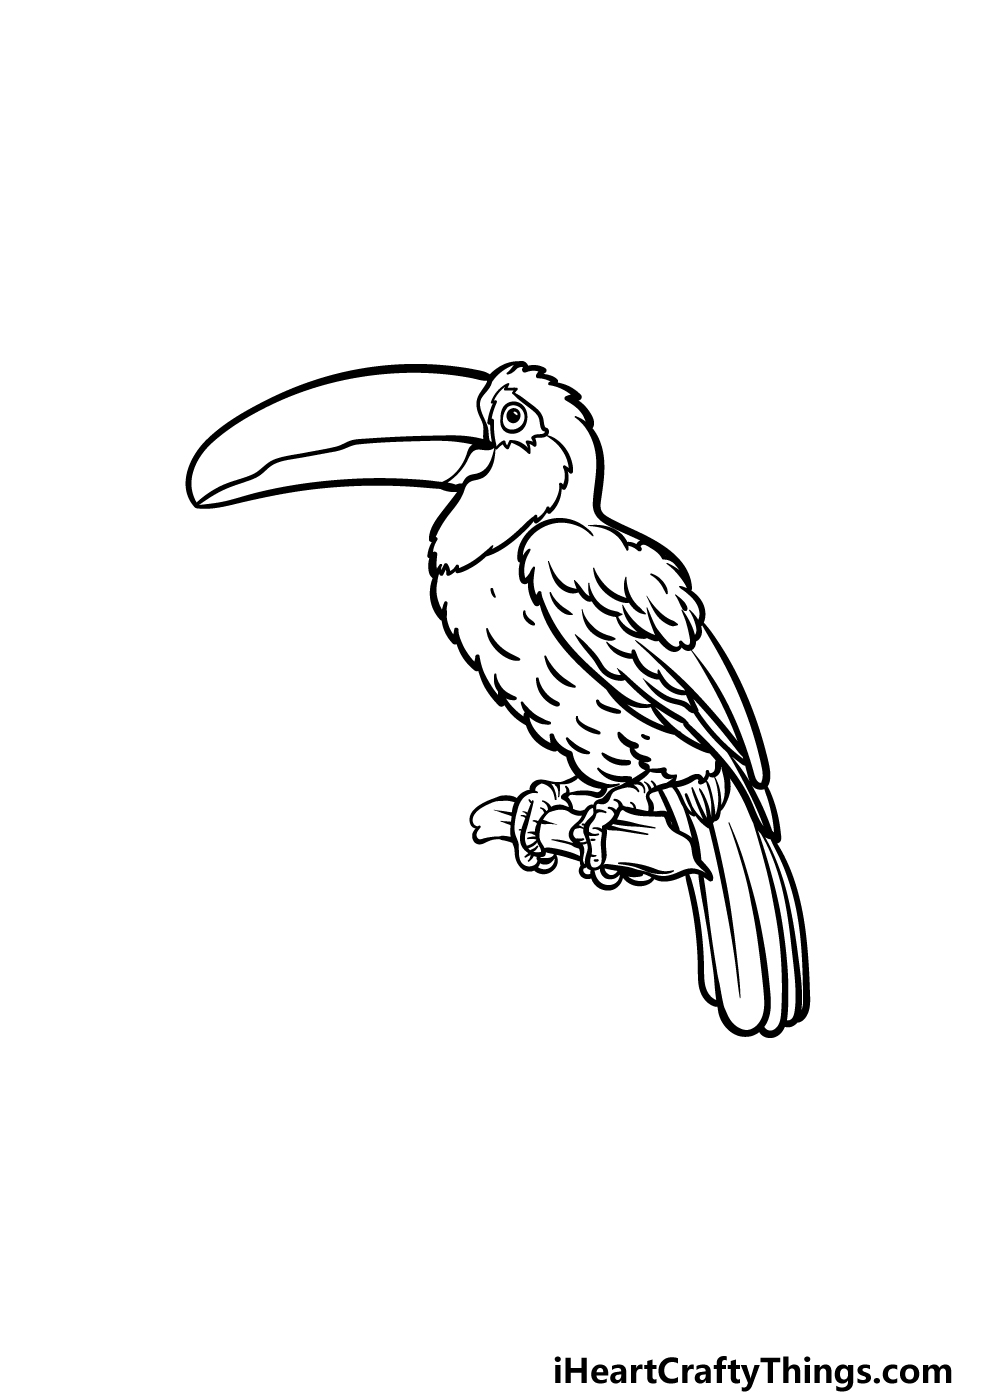 drawing a toucan step 5